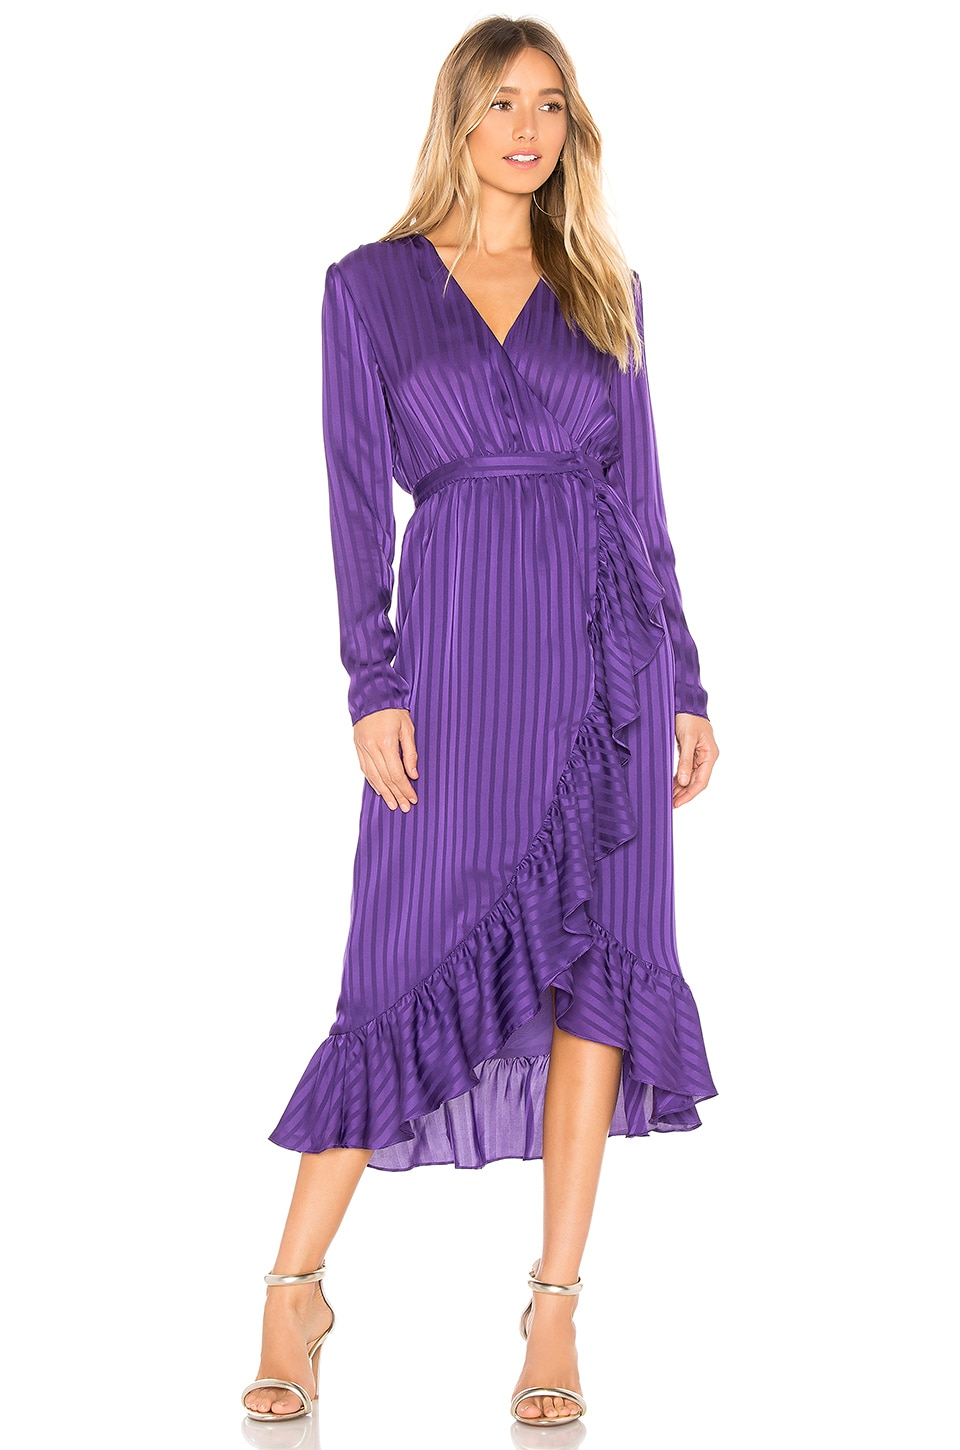 L'Academie The Don Midi Dress in Violet Indigo